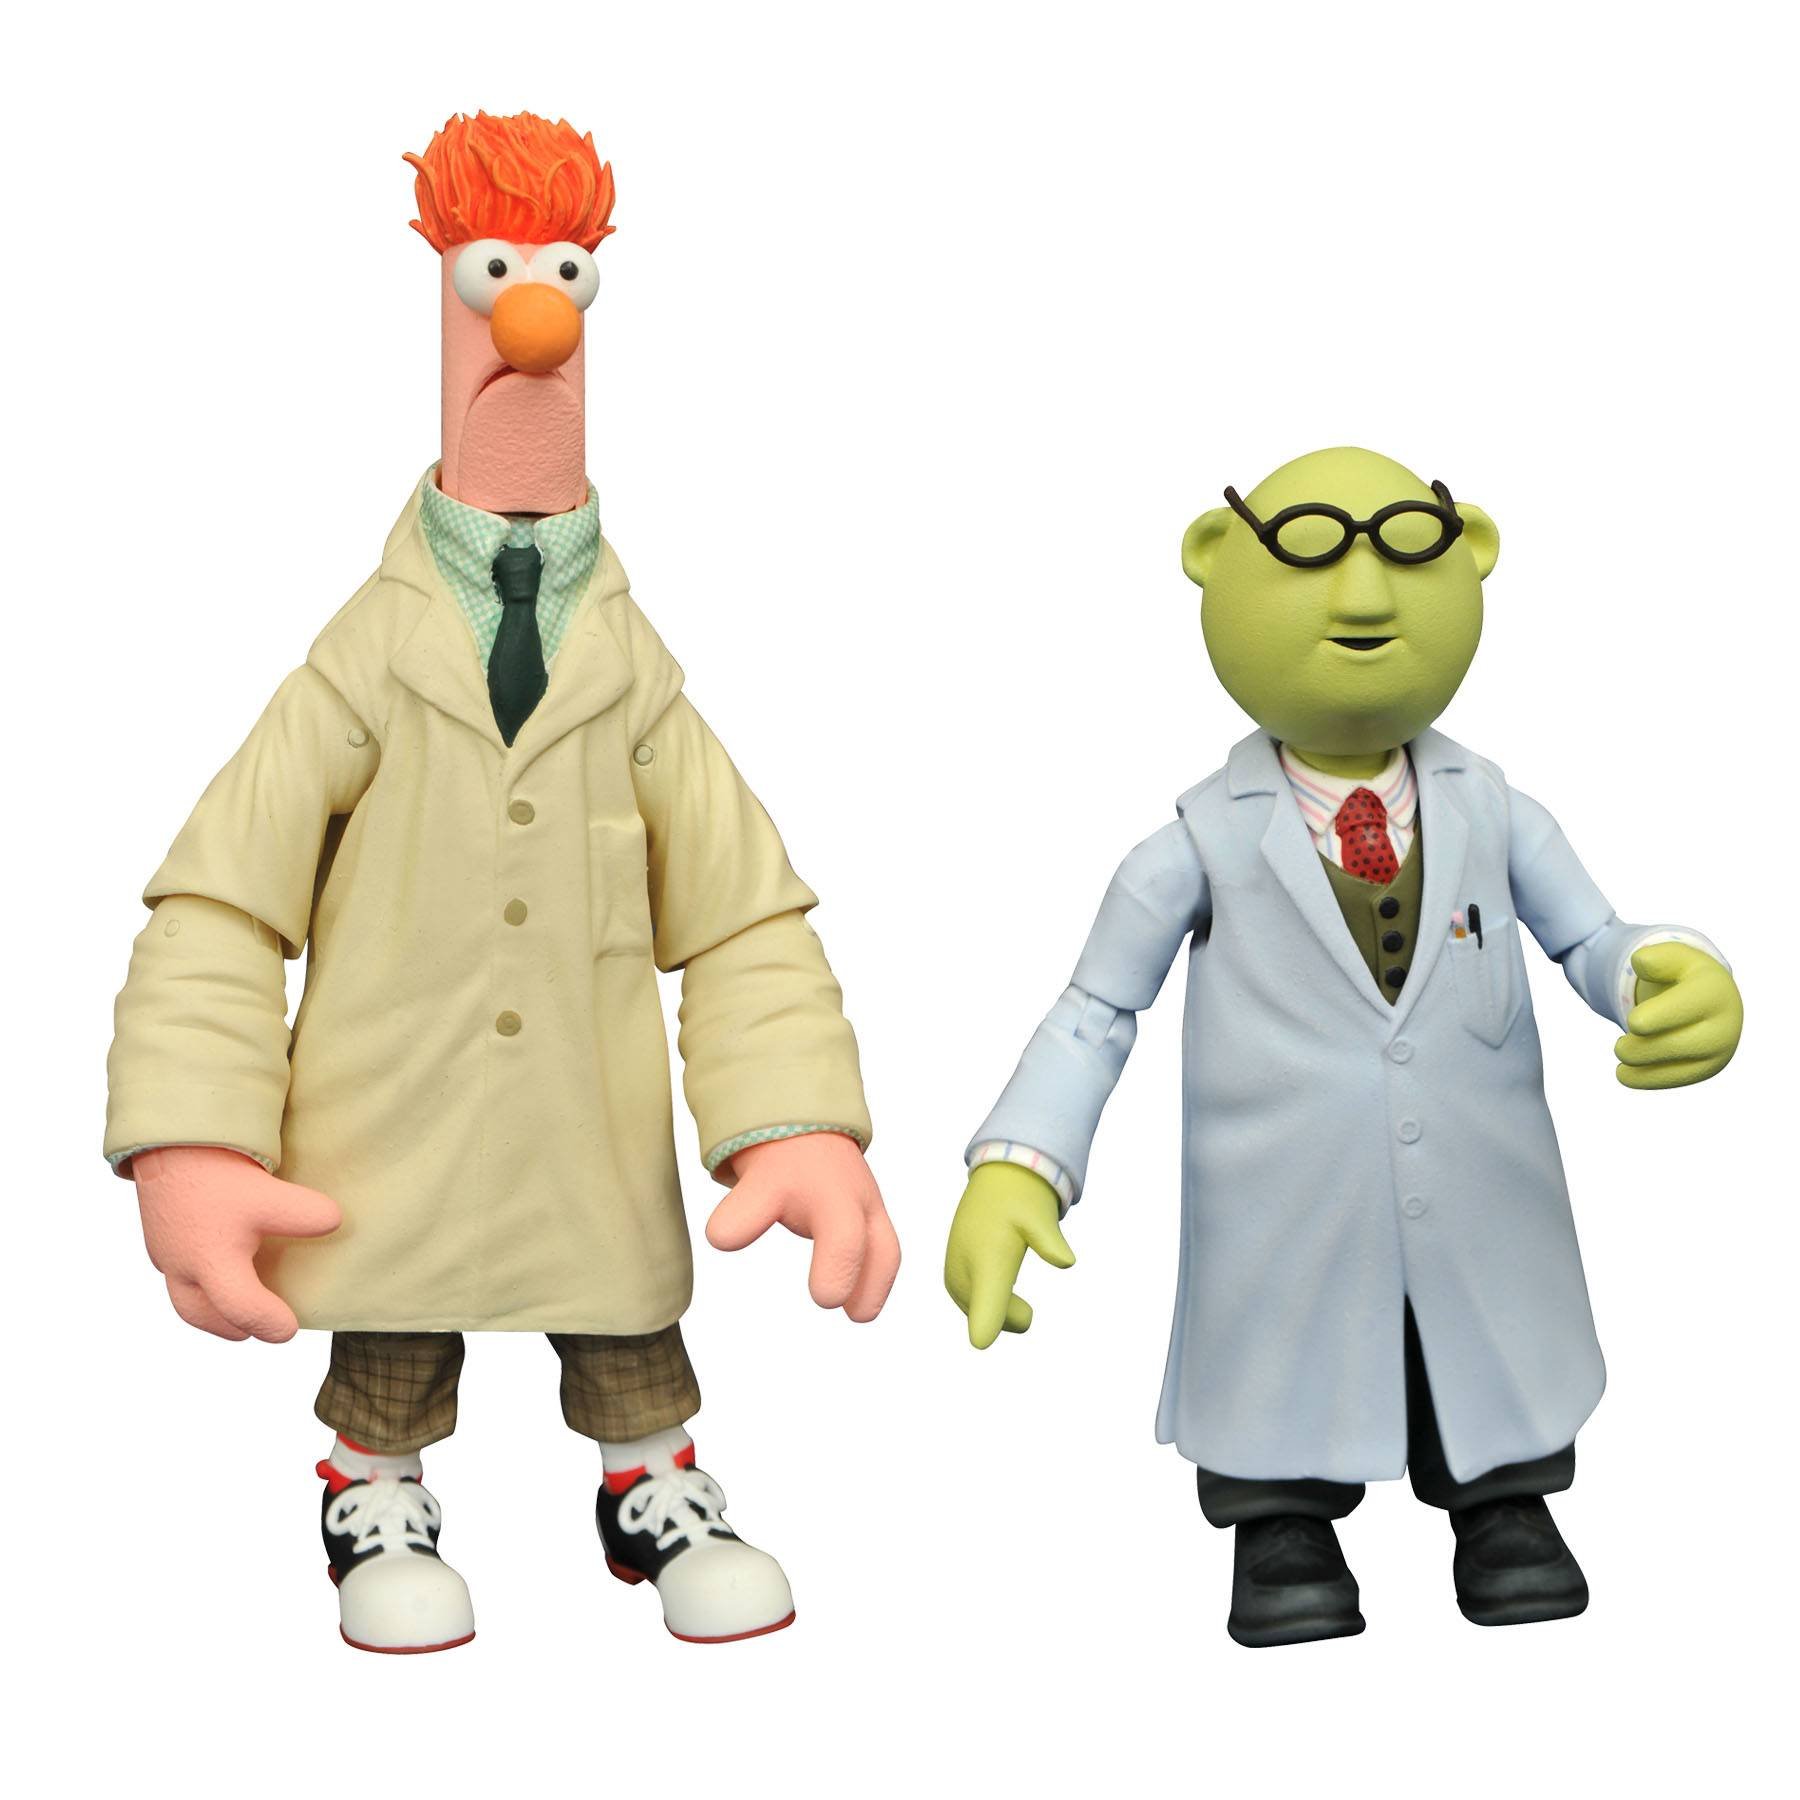 MUPPETS BEST OF SERIES 2 FIGURE ASST